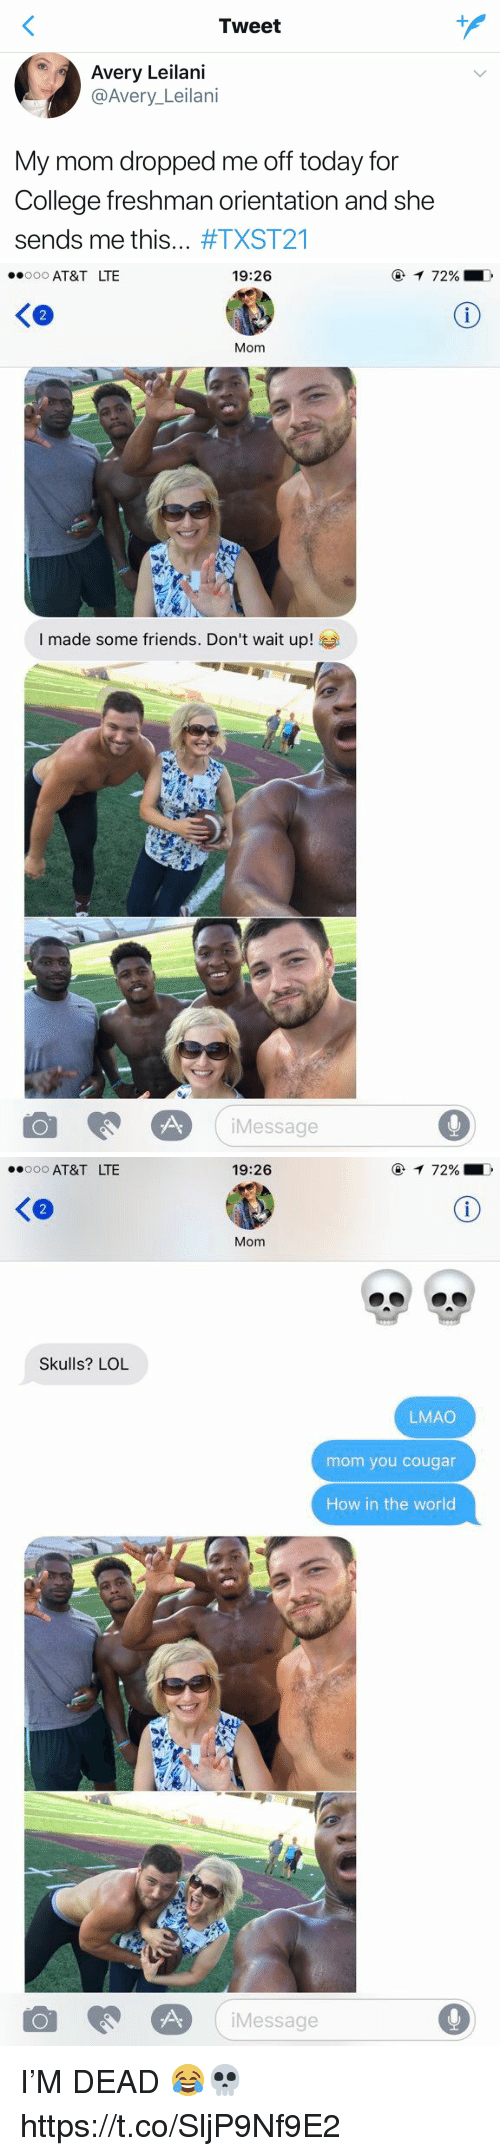 college freshman: Tweet  Avery Leilani  @Avery Leilani  My mom dropped me off today for  College freshman orientation and she  sends me this  #TXST21   19:26  ooooo AT&T LTE  Mom  I made some friends. Don't wait up!  Message  72%   ooooo AT&T LTE  Skulls? LOL  19:26  72%  Mom  LMAO  mom you cougar  How in the world  Message I'M  DEAD 😂💀 https://t.co/SljP9Nf9E2